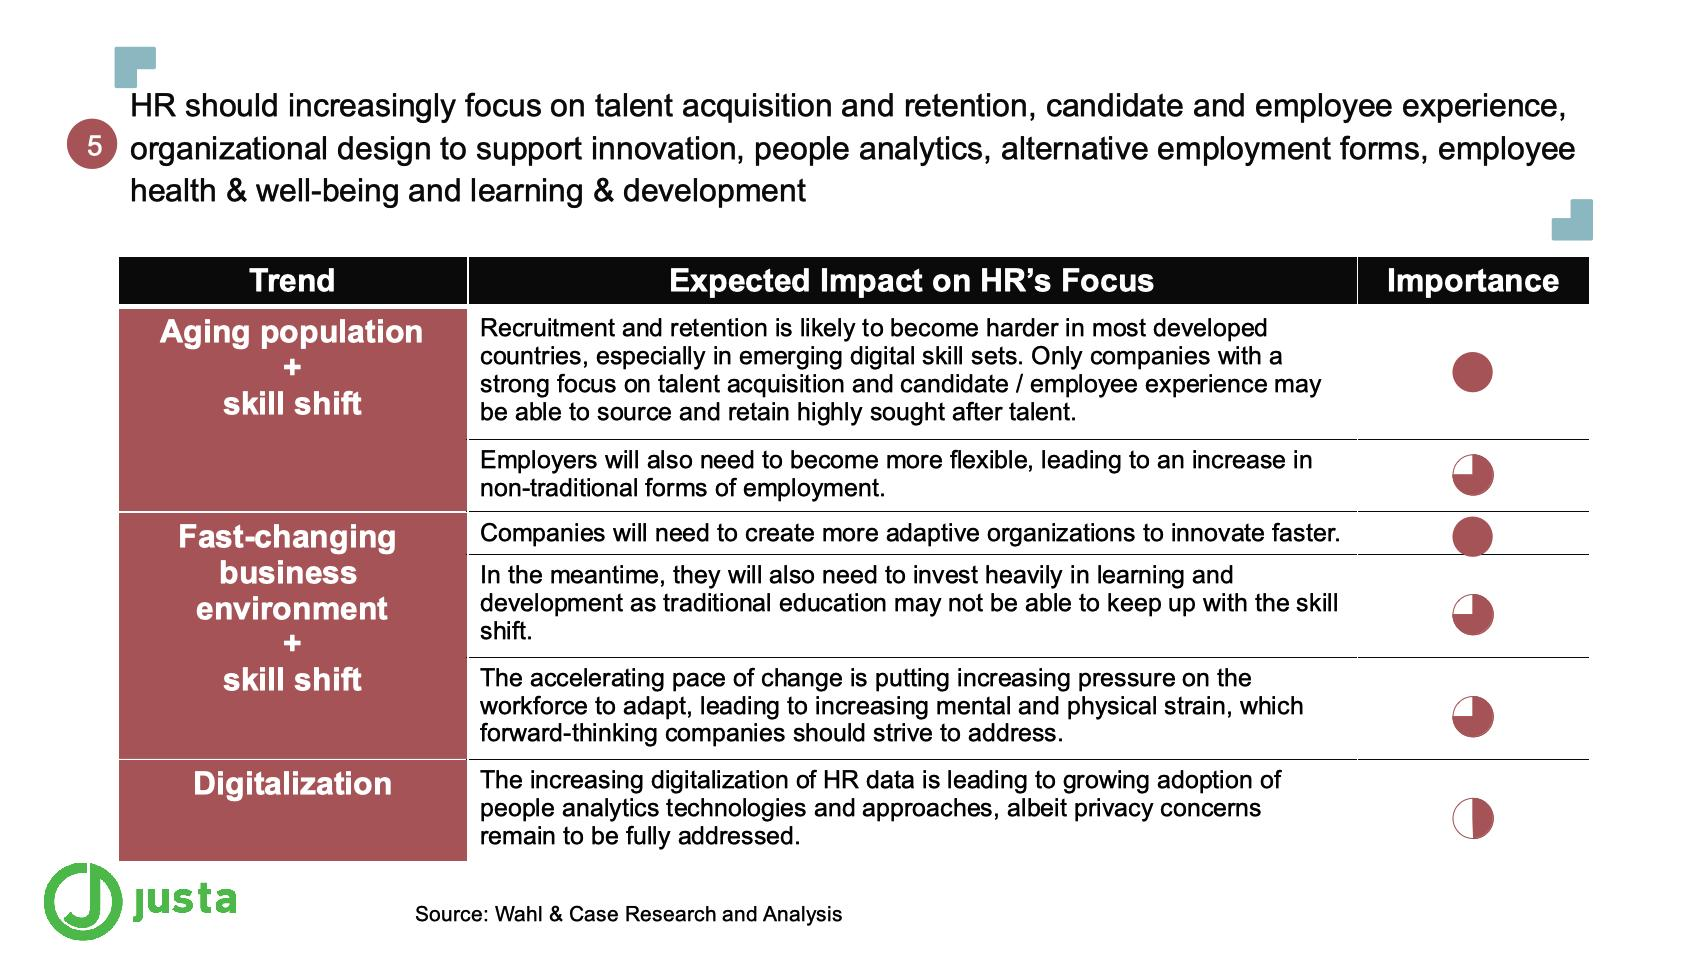 HR should increasingly focus on talent acquisition and retention, candidate and employee experience, organizational design to support innovation, people analytics, alternative employment forms, employee health & well-being and learning & development